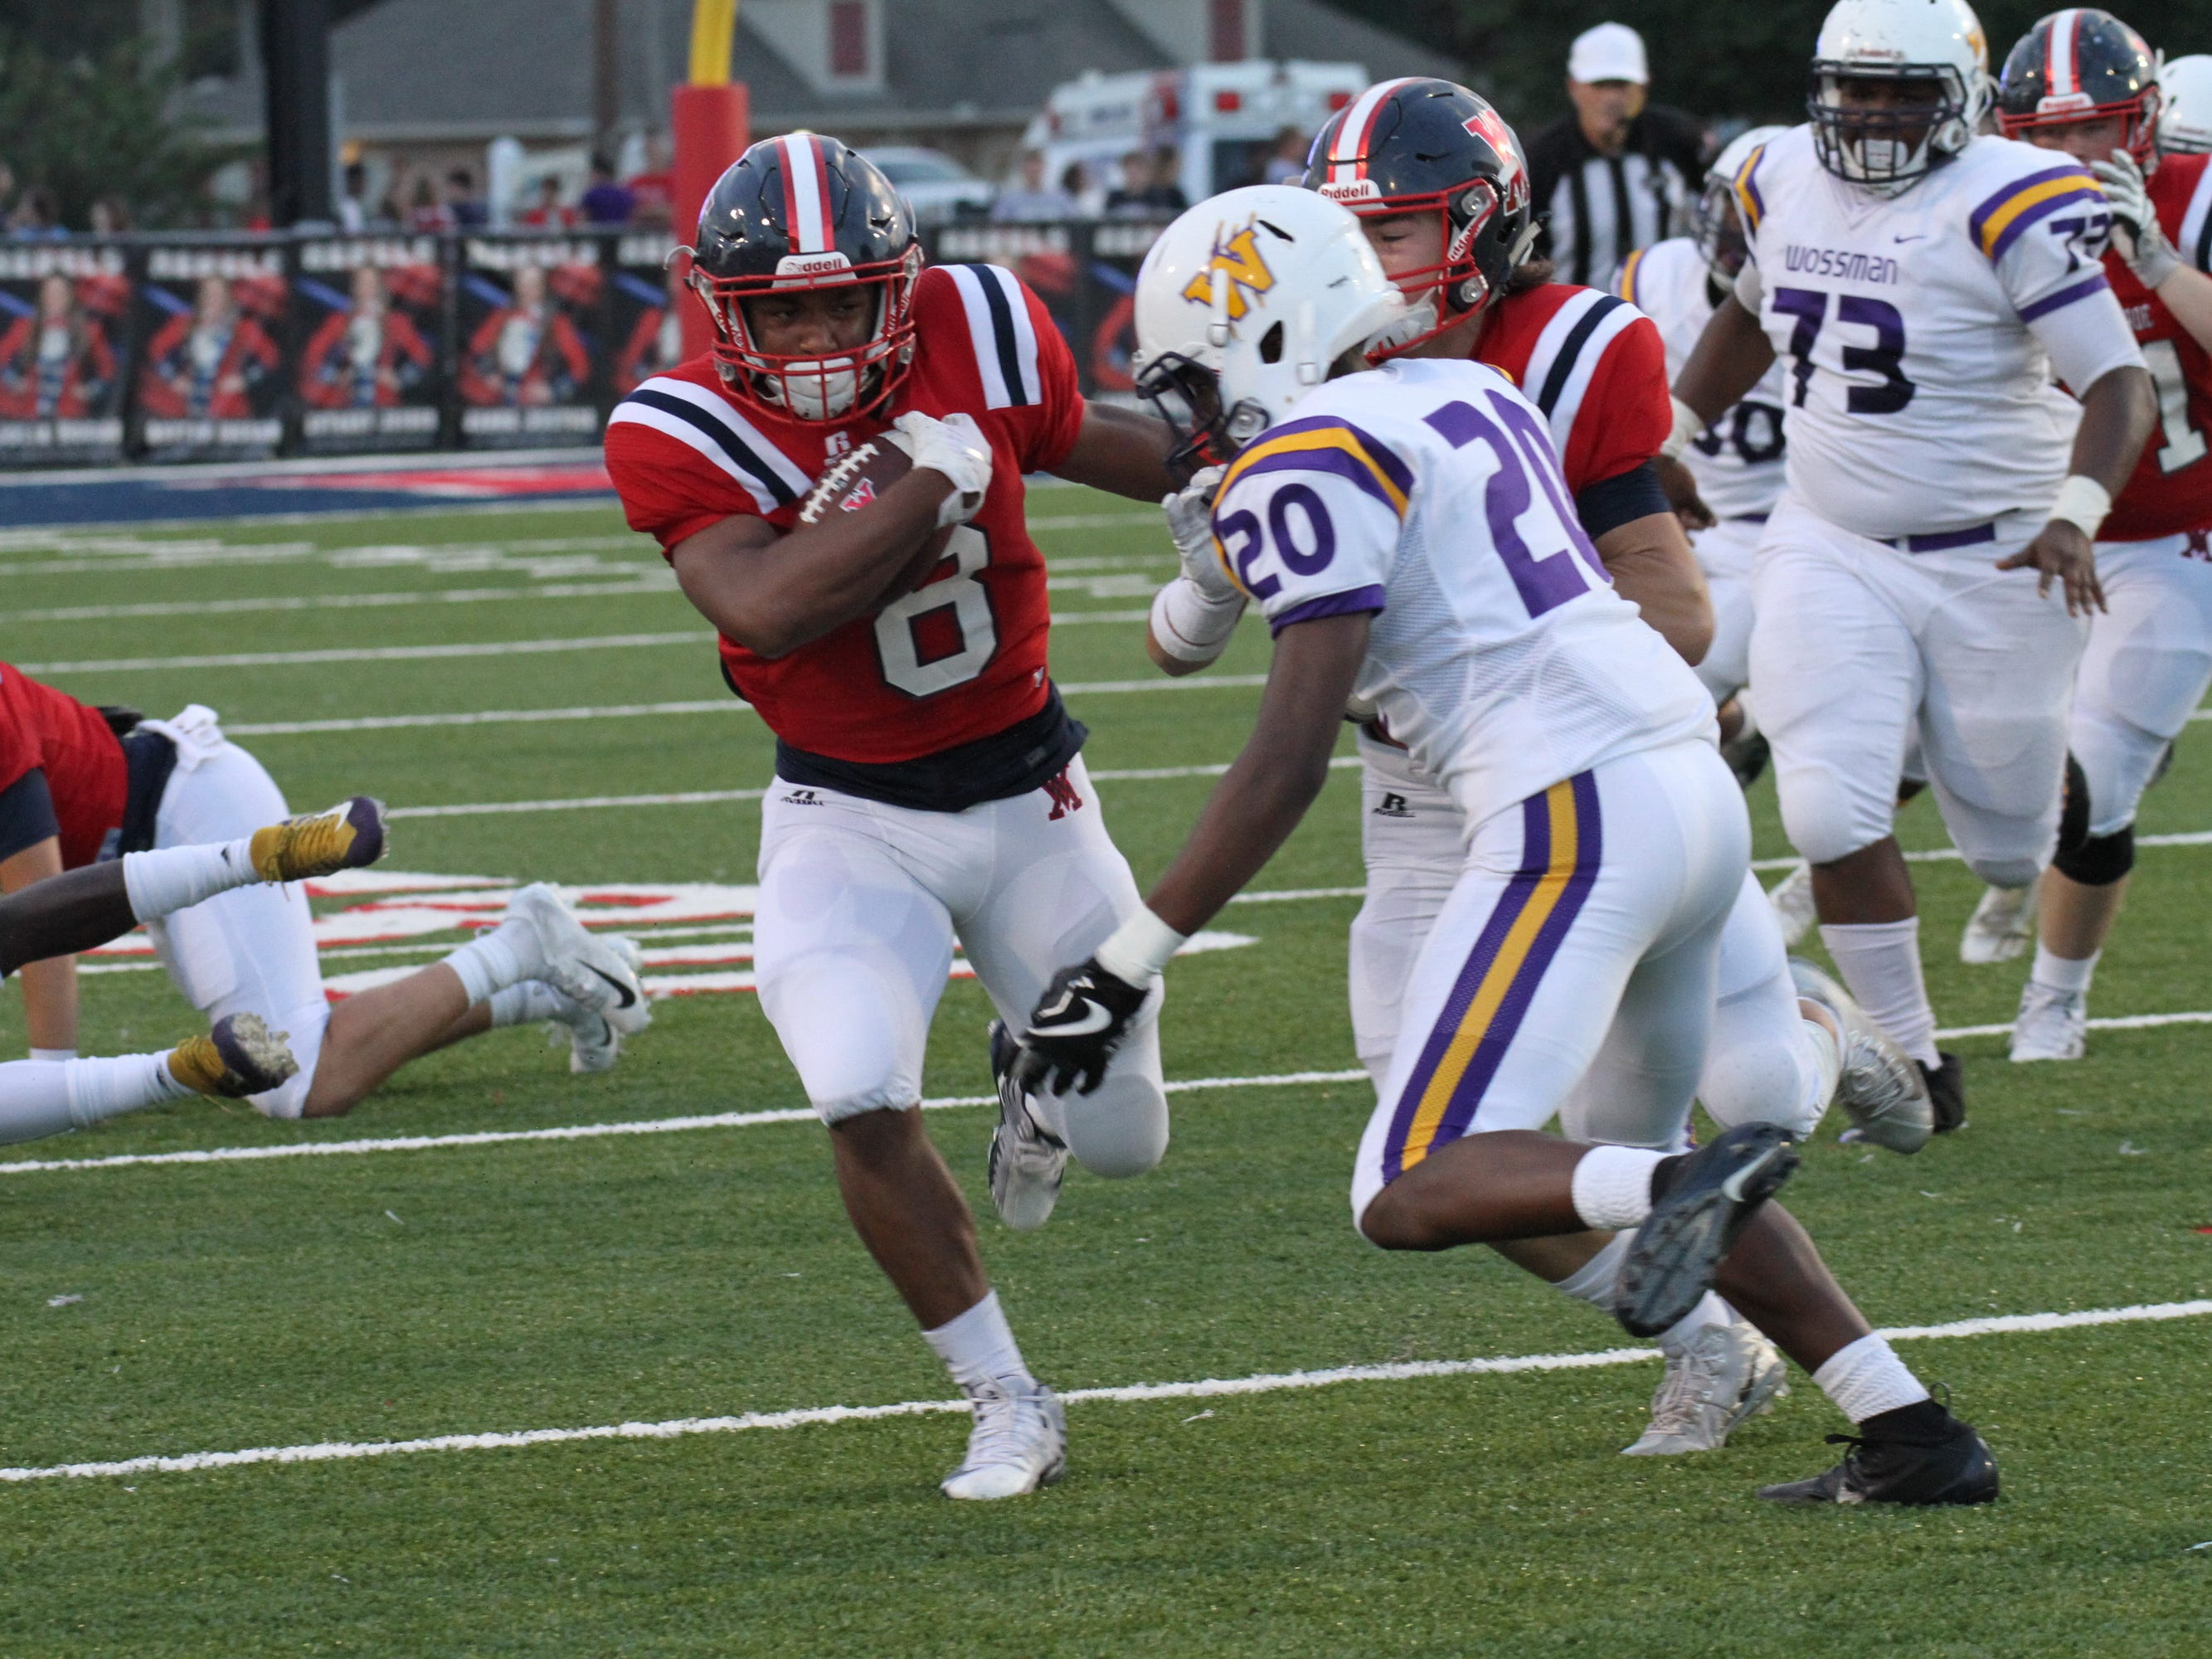 Wossman traveled to West Monroe High School on Sept. 14. West Monroe would win the game 56-14.